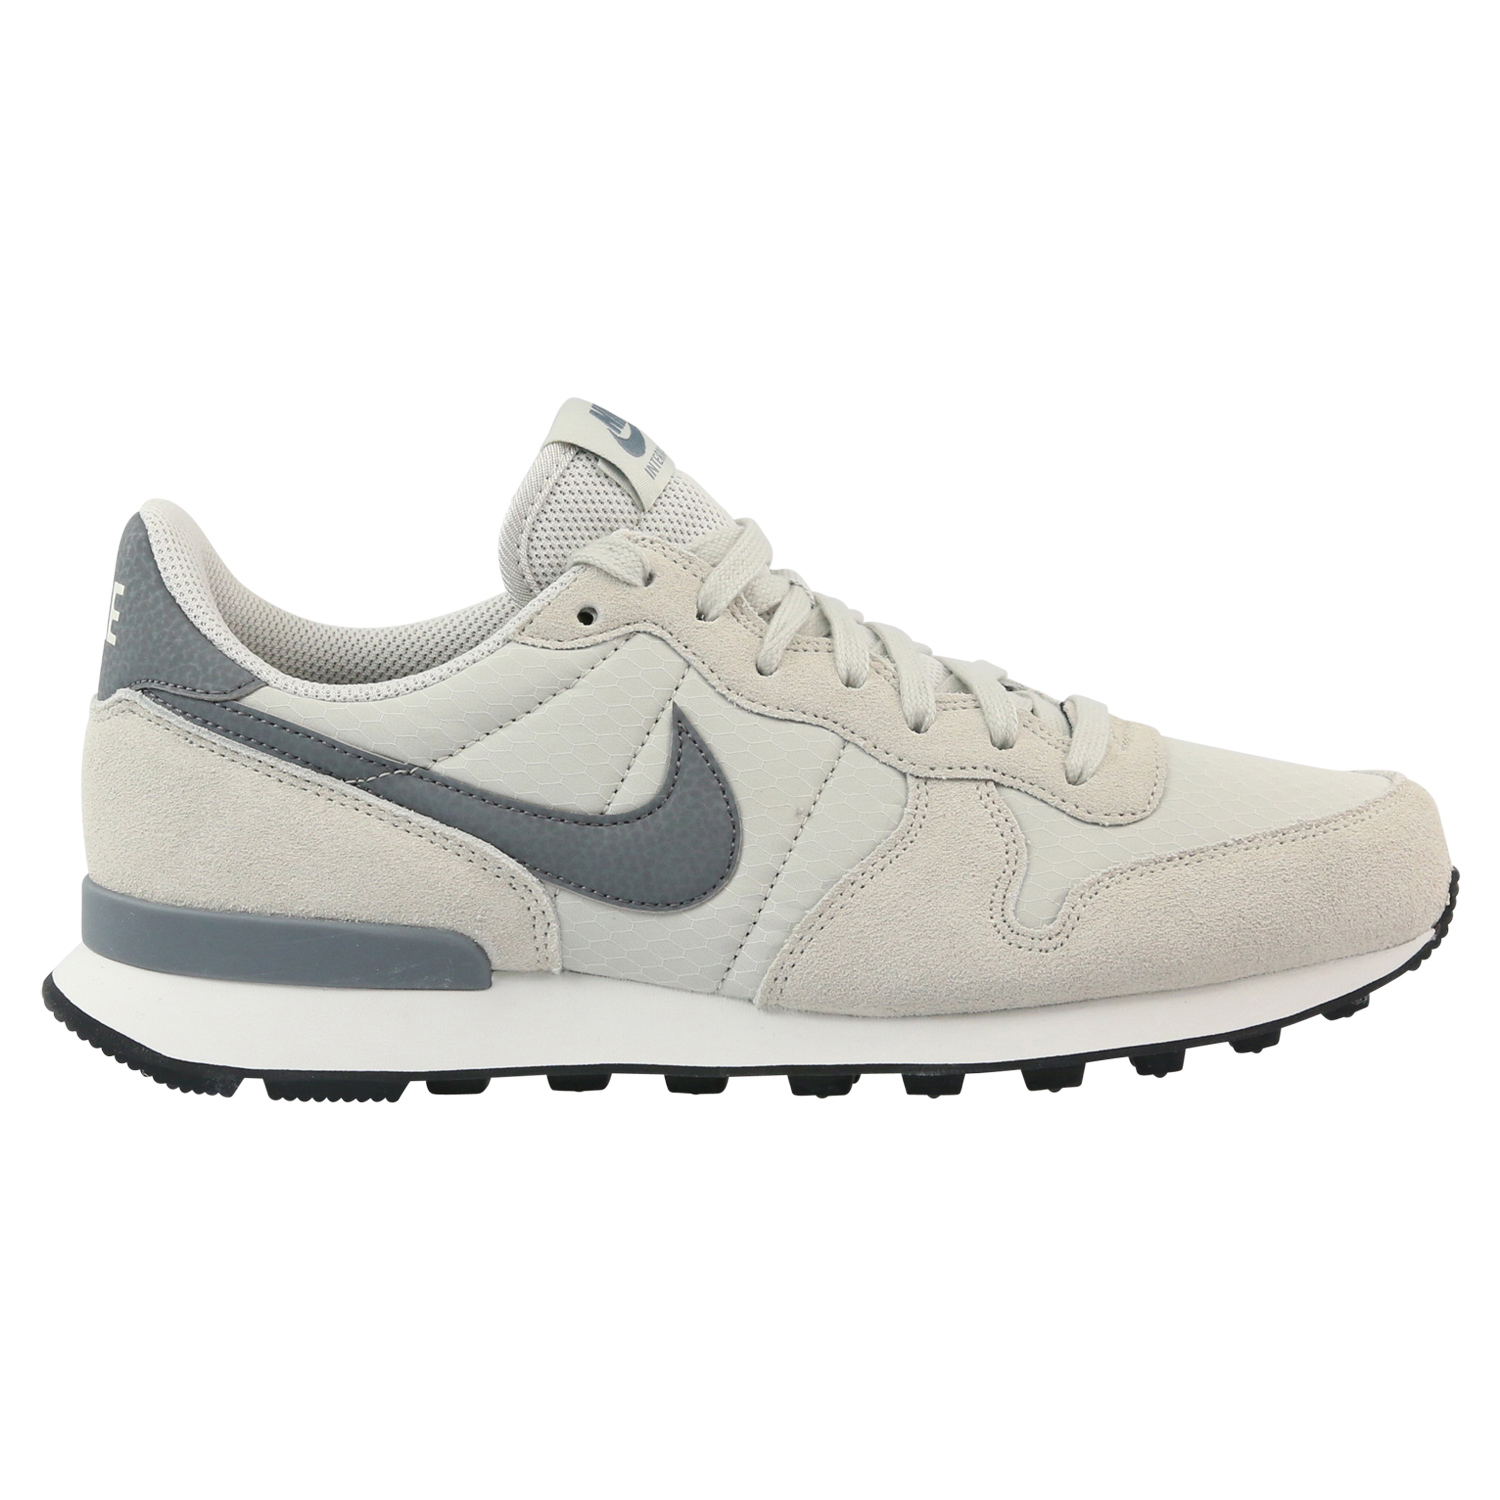 nike internationalist se premium schuhe turnschuhe sneaker. Black Bedroom Furniture Sets. Home Design Ideas